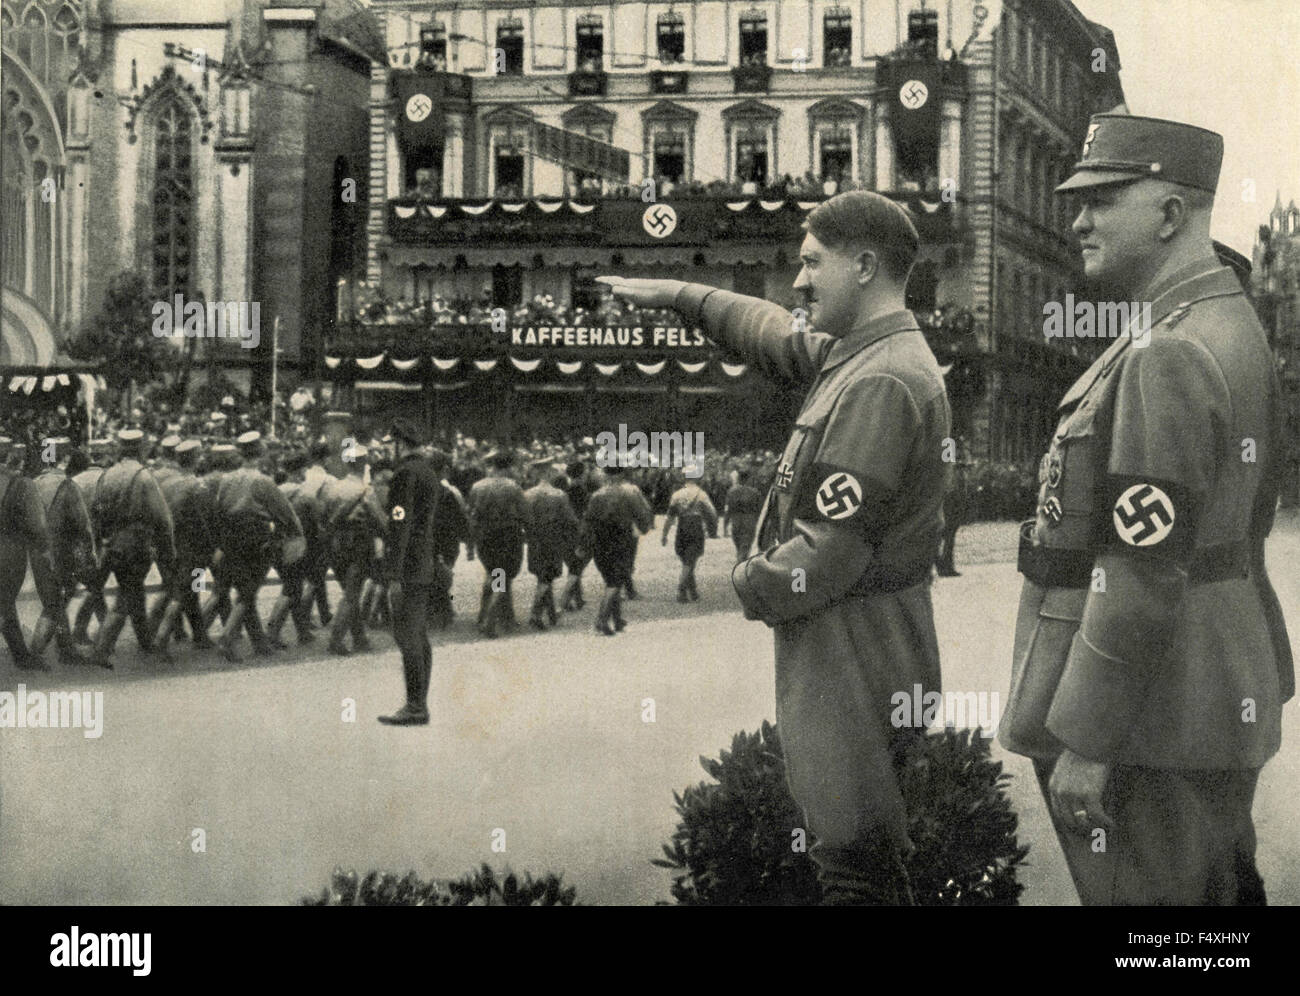 Adolf Hitler during a Nazi military parade in Leipzig ...